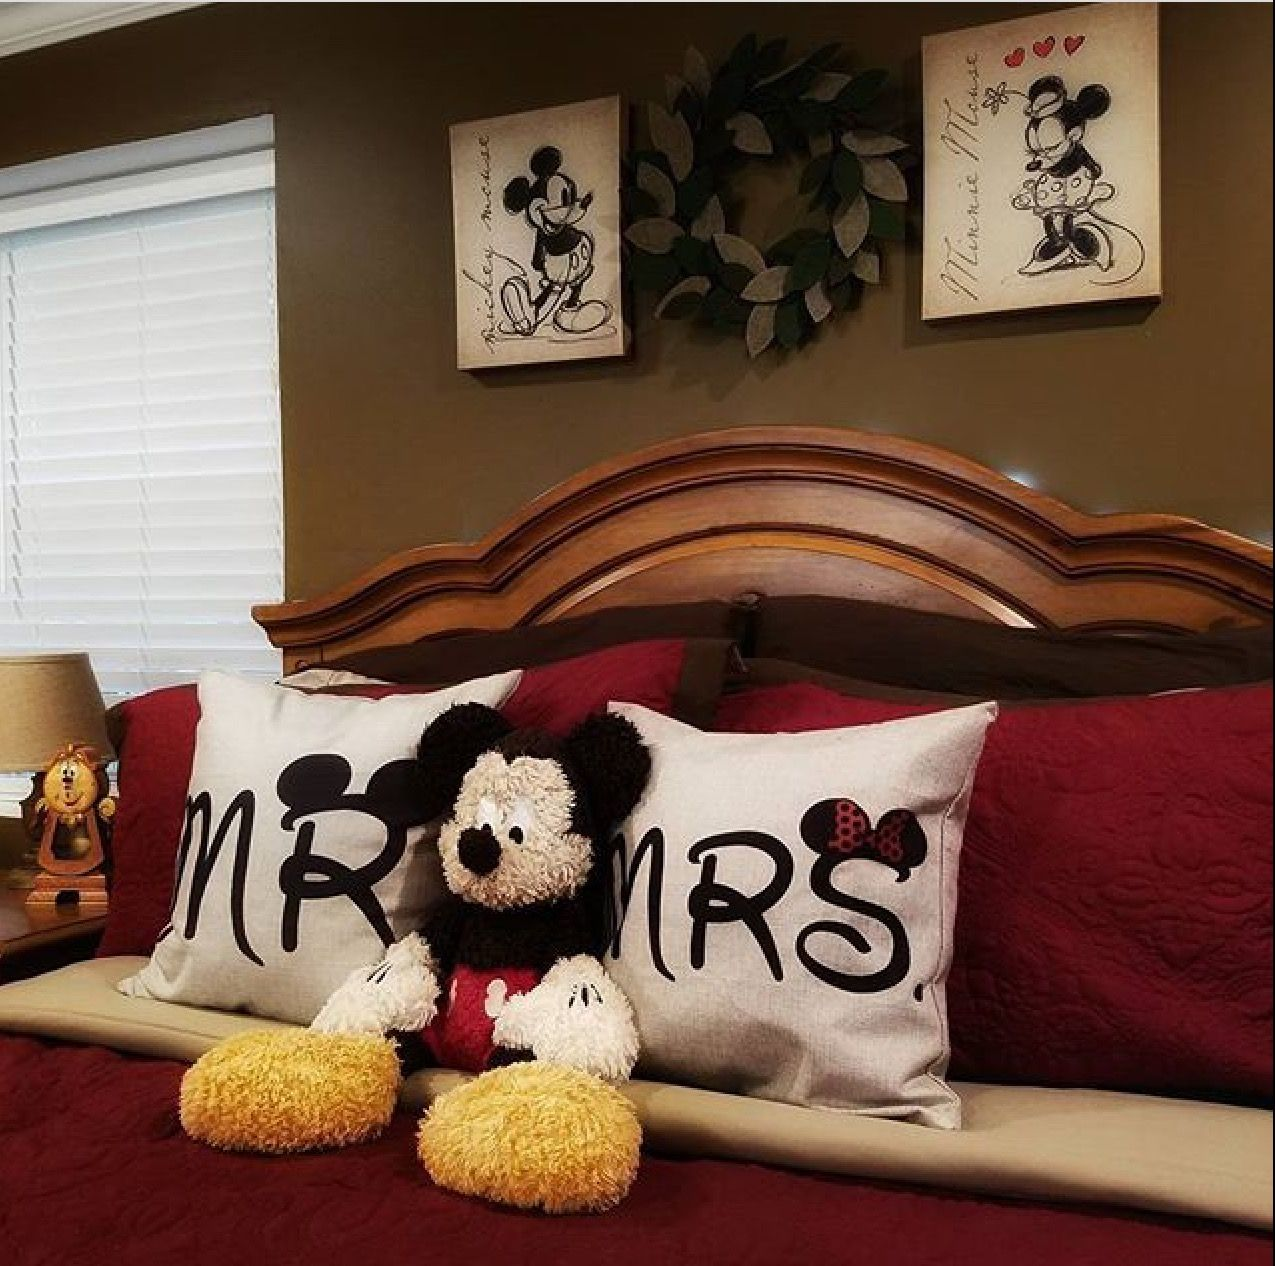 Have The Same Art And Pillows In 2019 Disney Home Decor